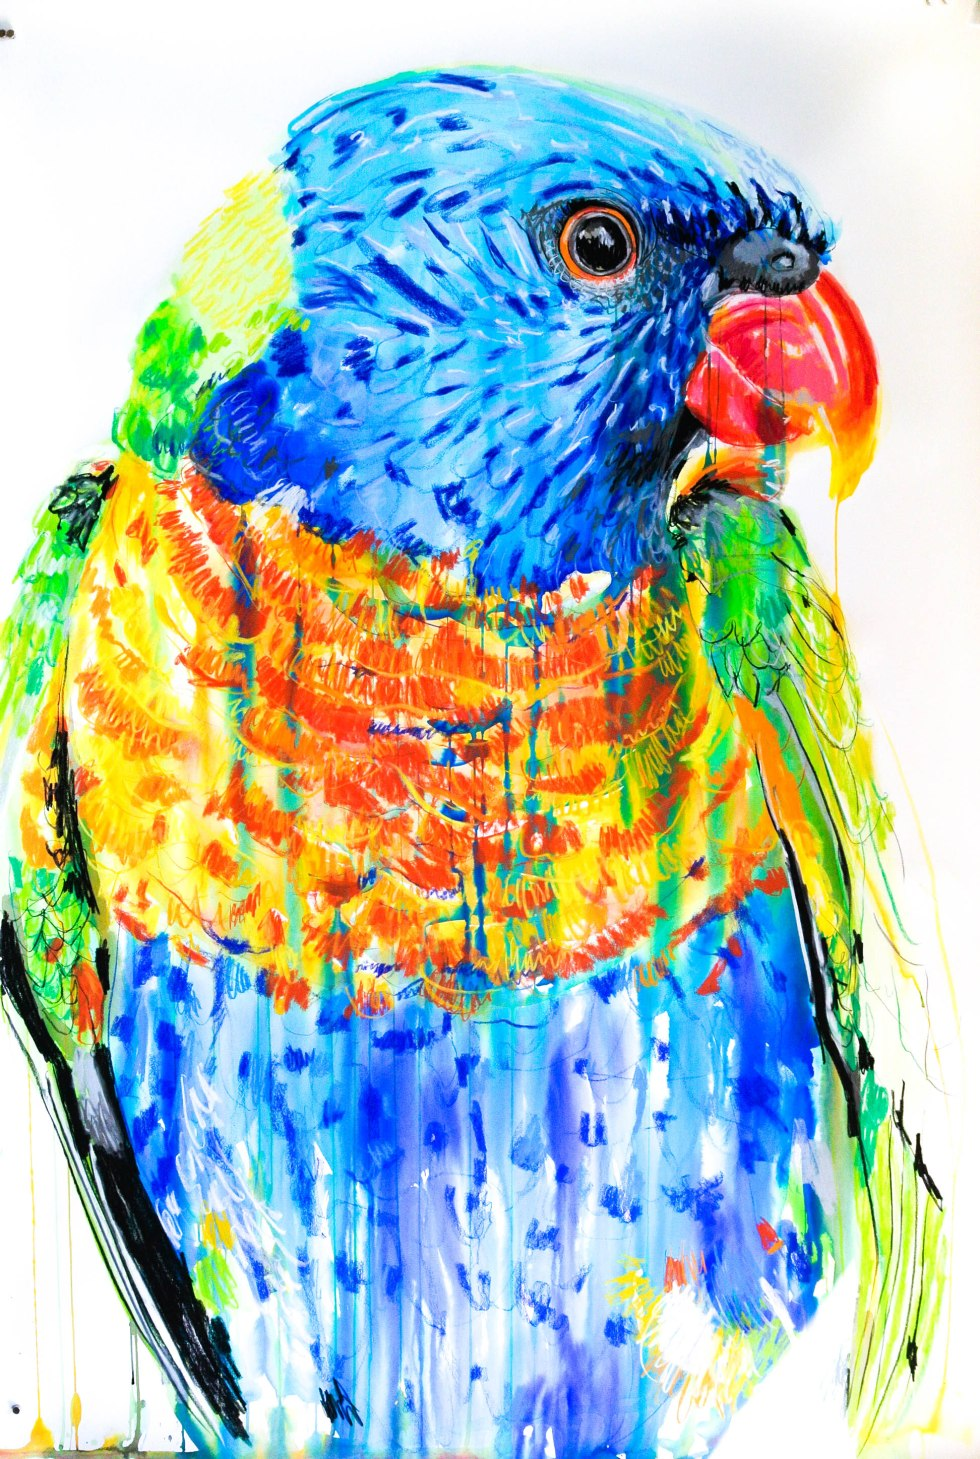 Potter_Rainbow Lorikeet_114by150_Aug15.highres